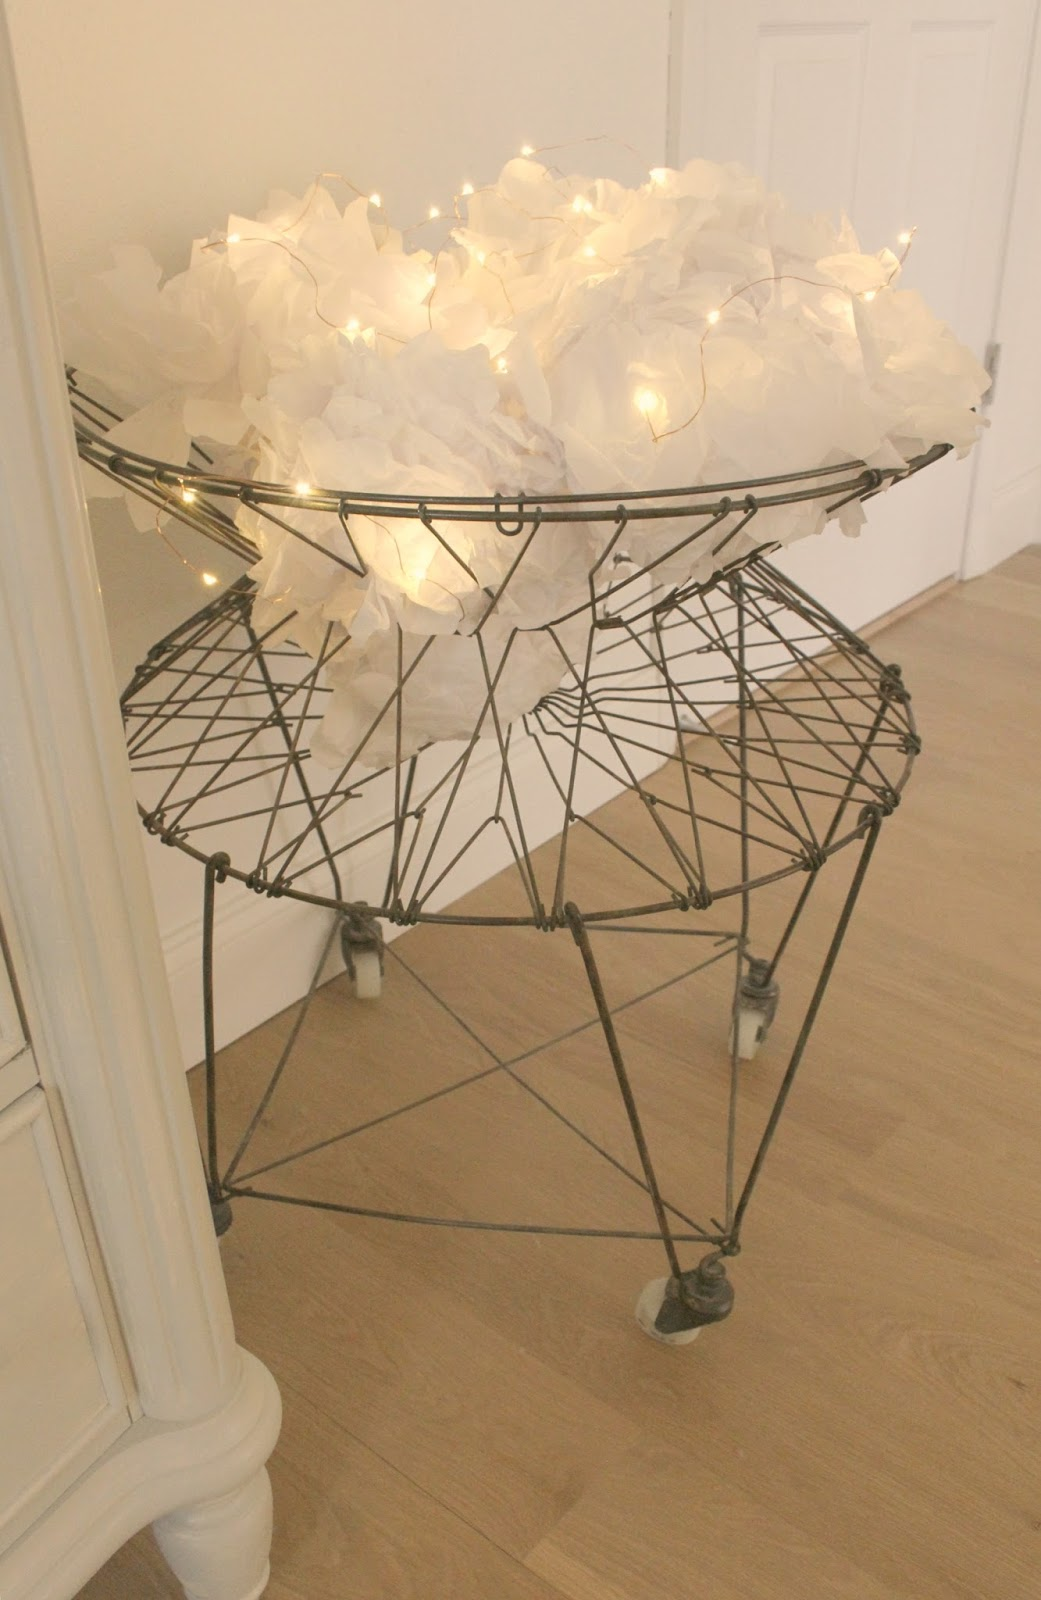 Vintage French wire laundry basket with white tissue poufs and fairy lights. Hello Lovely Studio.